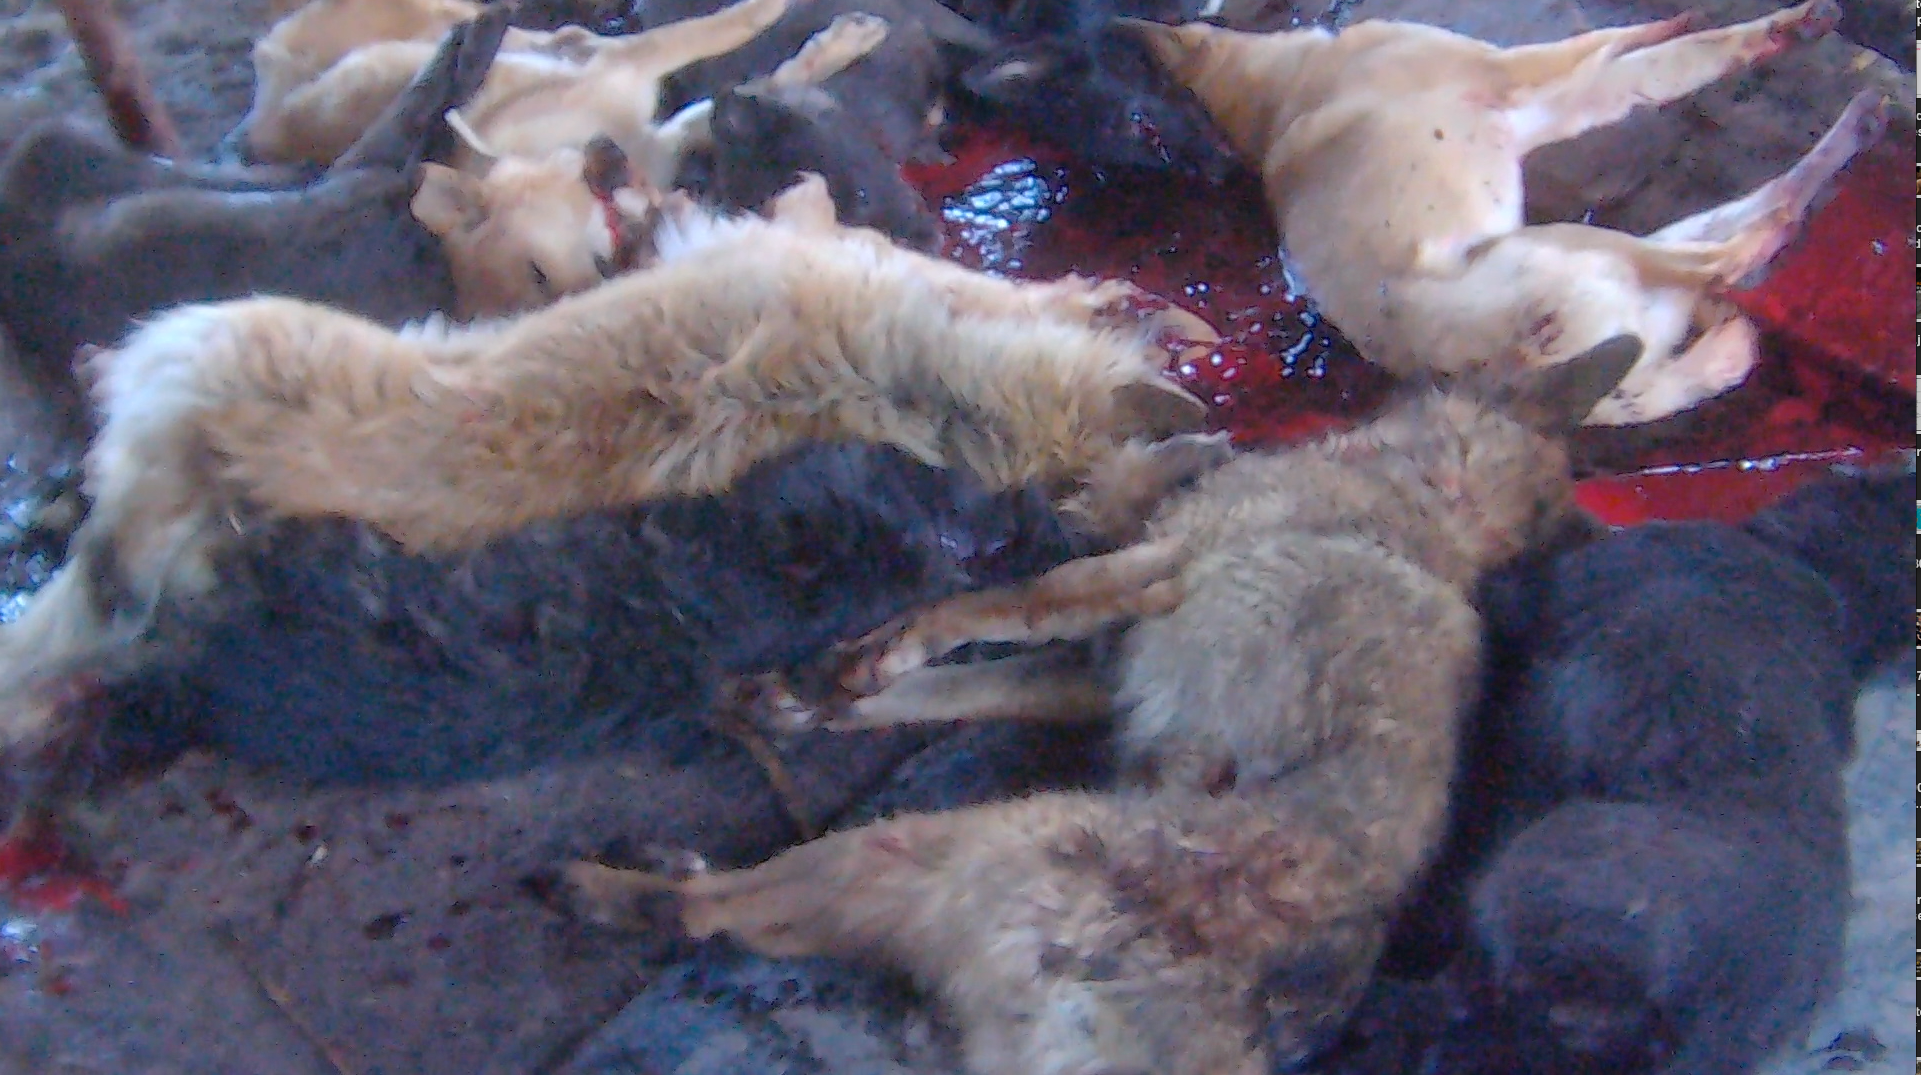 Sign Now to Stop Dog Meat - photo#5